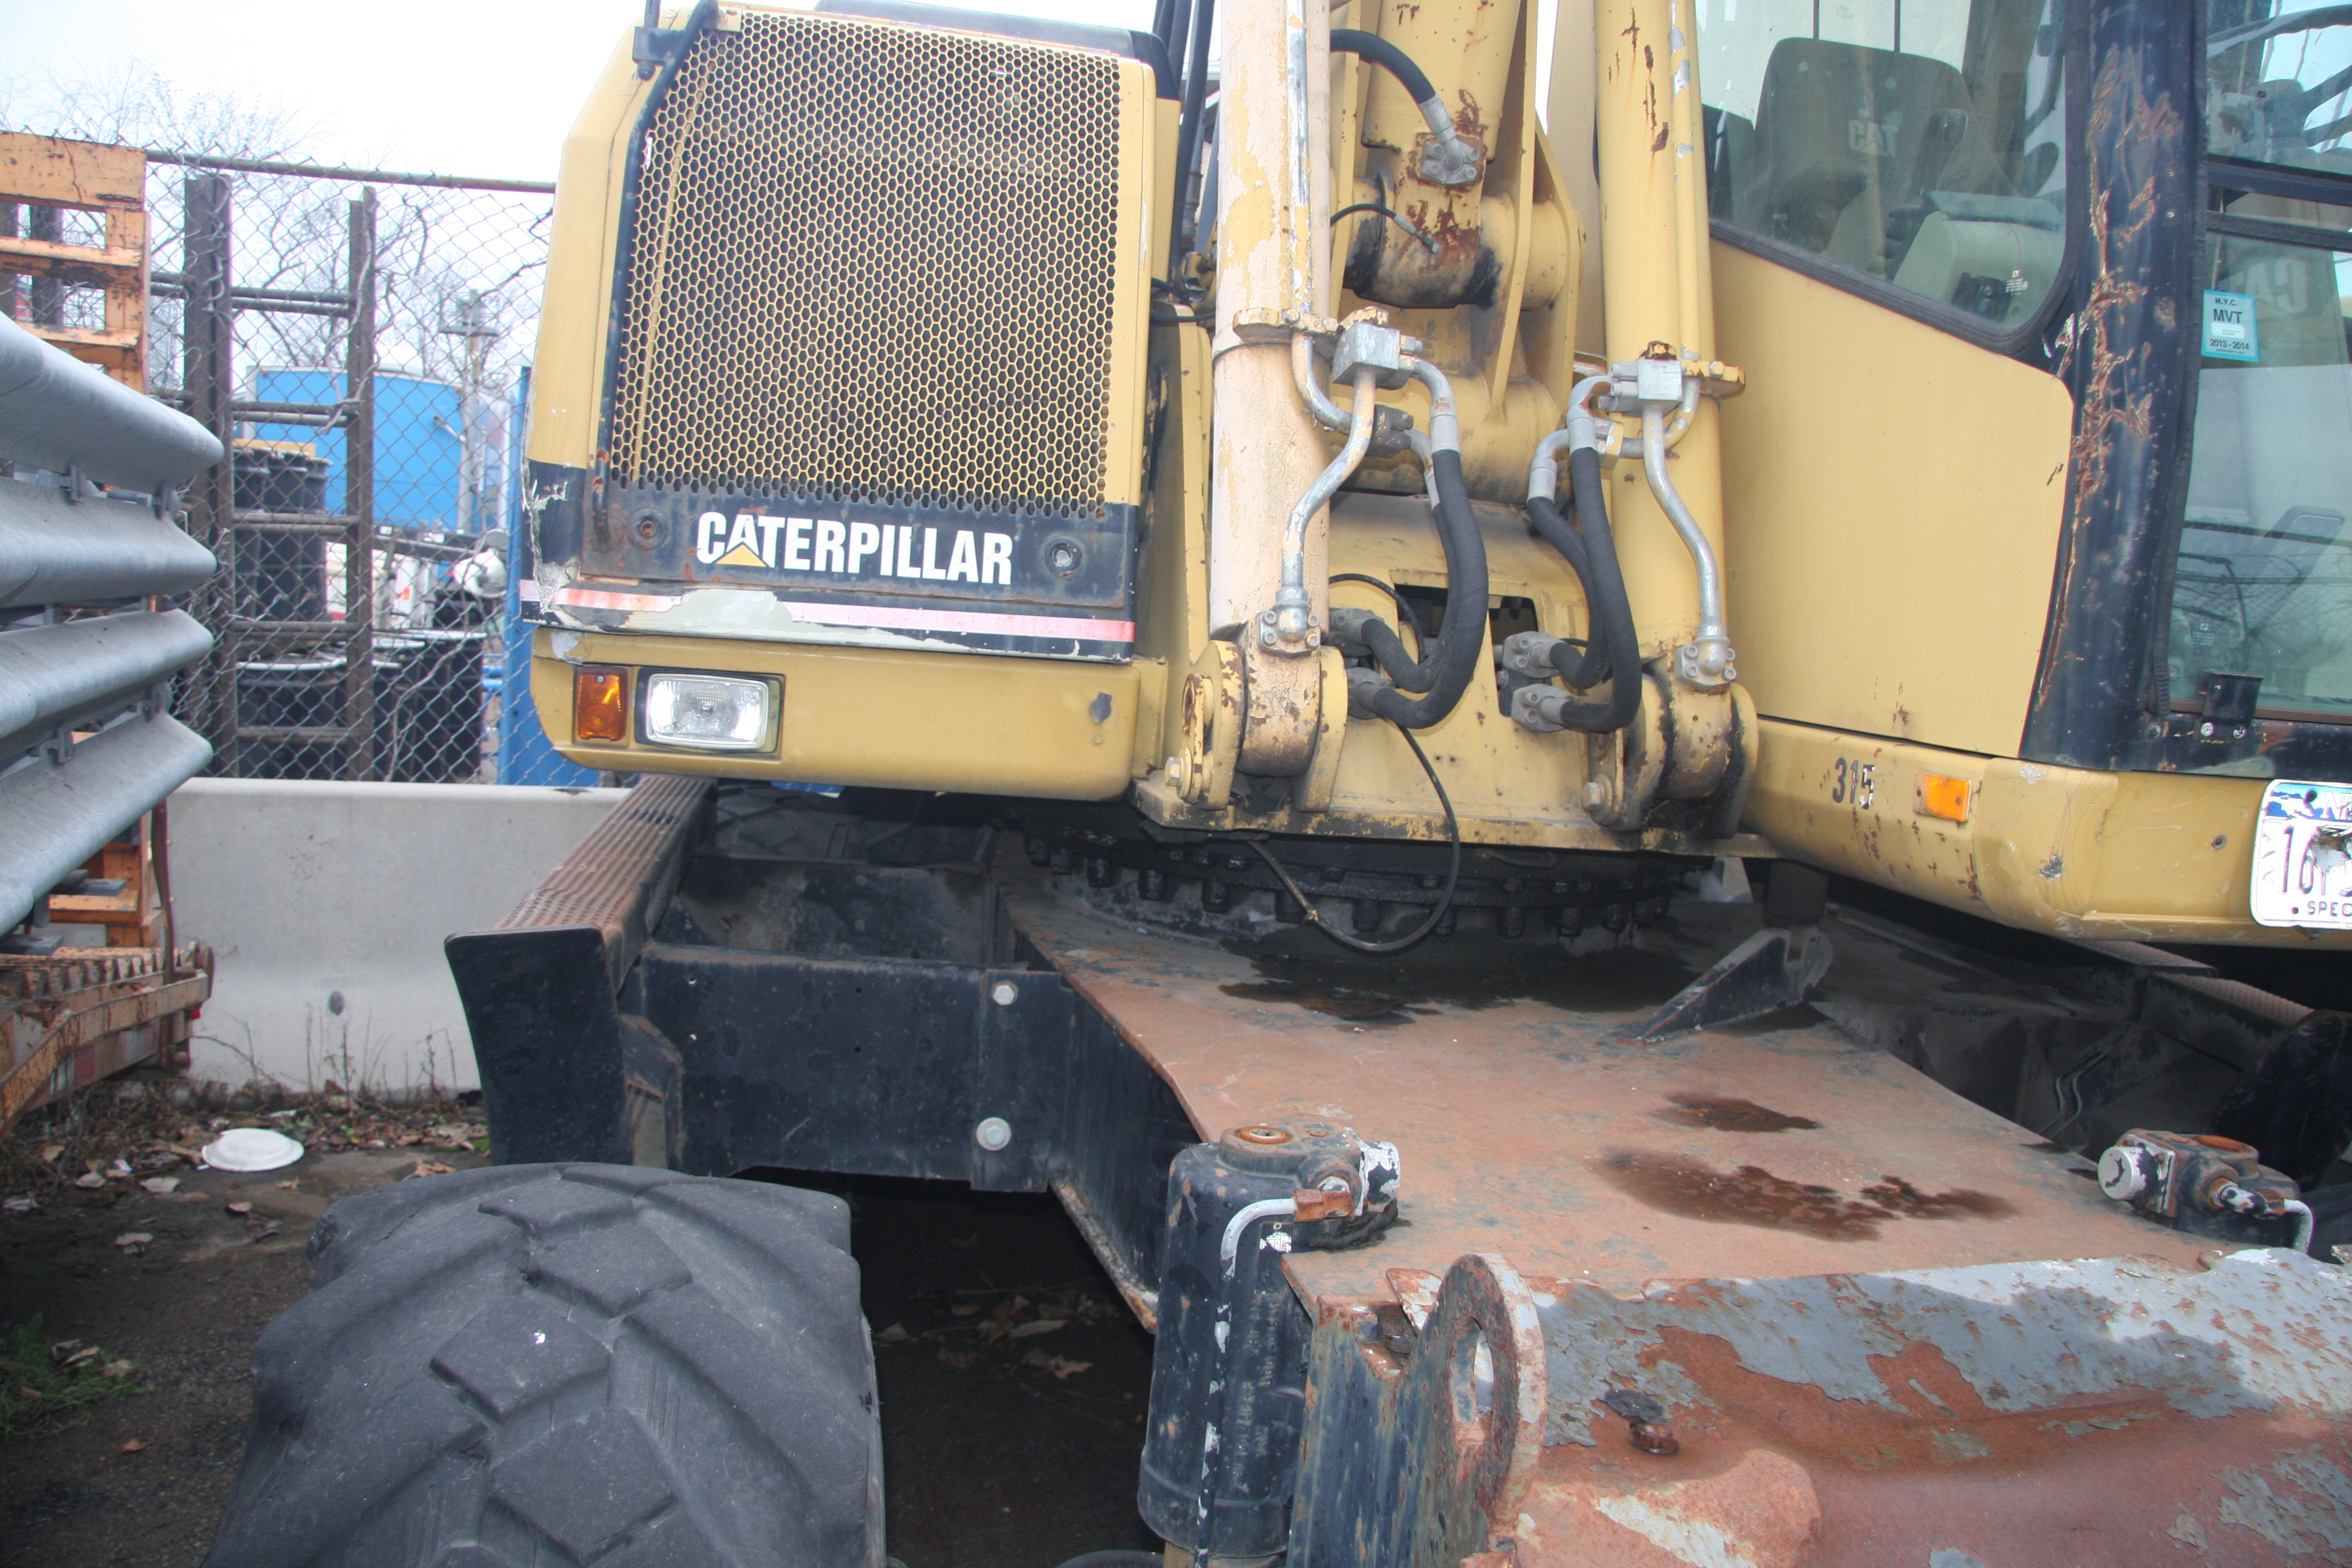 Lot 9 - 1996 CATERPILLAR M318 EXCAVATOR, S/N: 8AL00493 (WEX1) [LOCATED @ KEM YARD - PELHAM MANOR, BRONX,